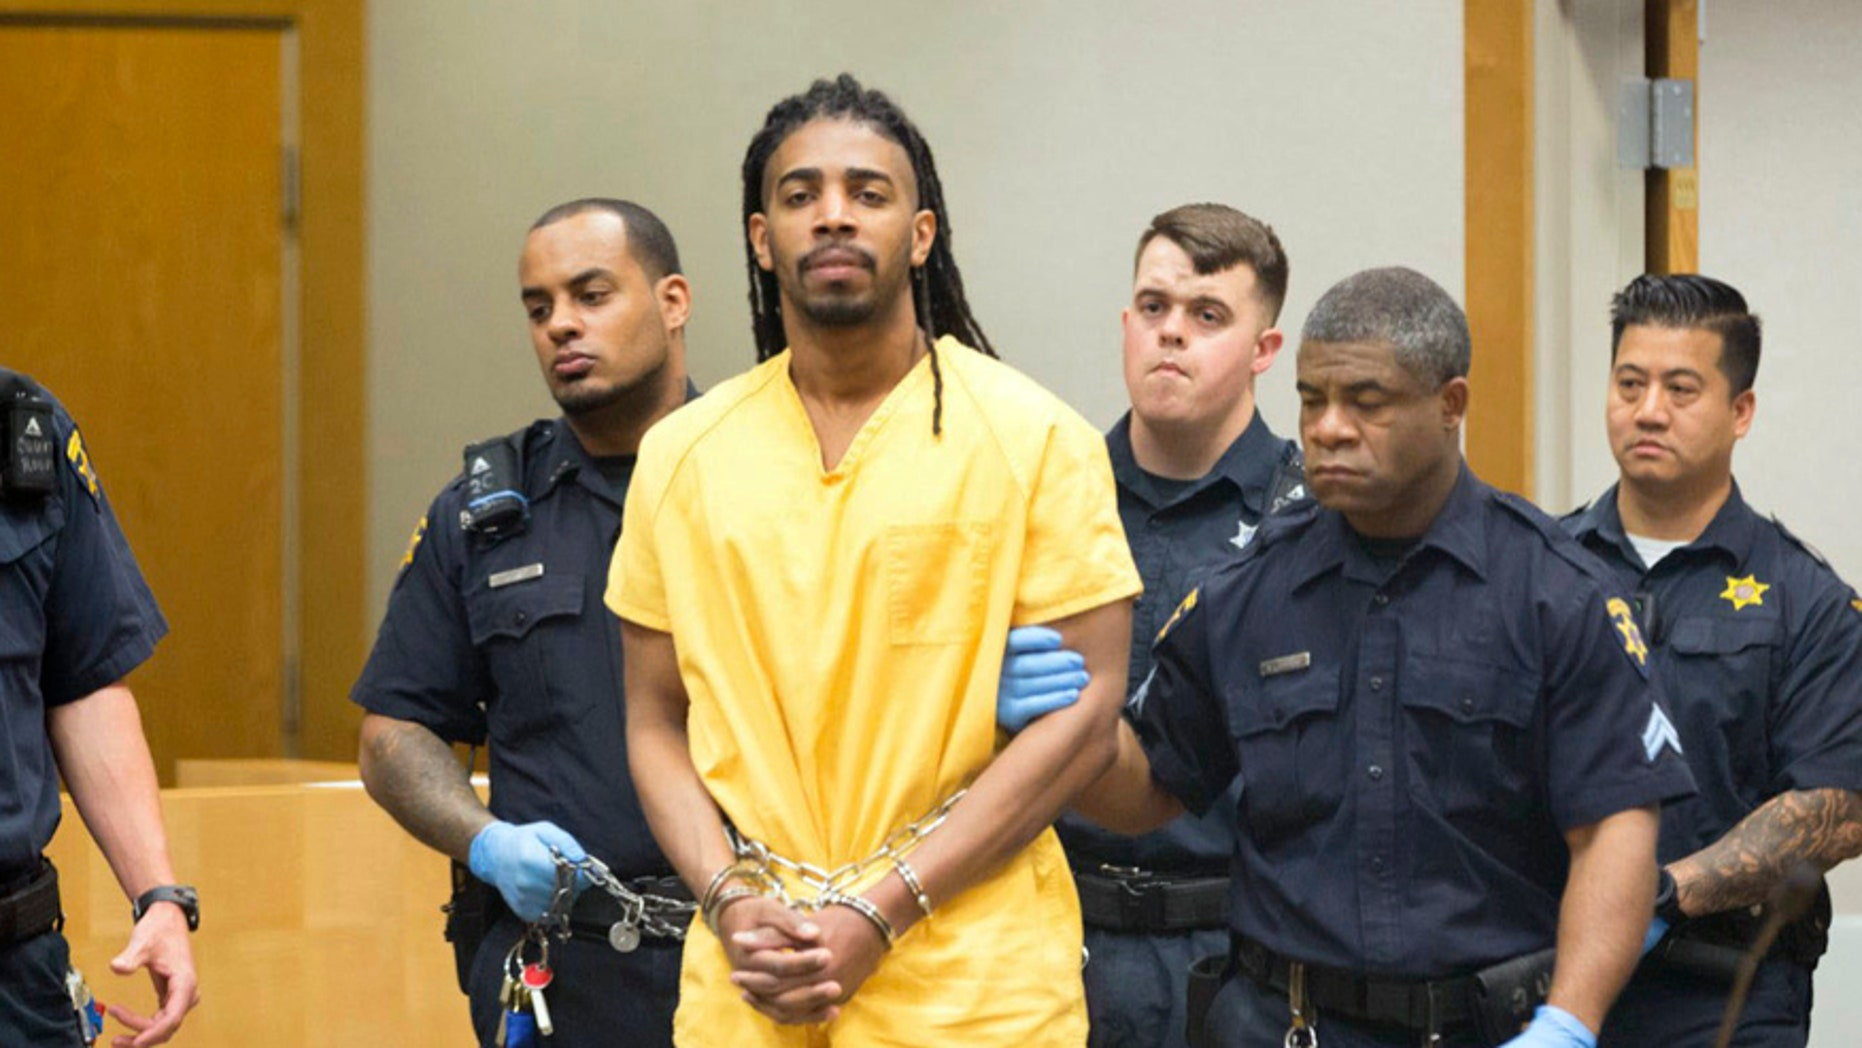 Wesley Correa-Carmenaty is escorted into court for his initial appearance, Wednesday May 3, 2017, in Omaha, Neb. Correa-Carmenaty, a convicted felon, is accused of shooting two western Iowa deputies then escaping in a jail van before being recaptured in Nebraska had his bail set at $10 million. (Kent Sievers/Omaha World-Herald via AP)